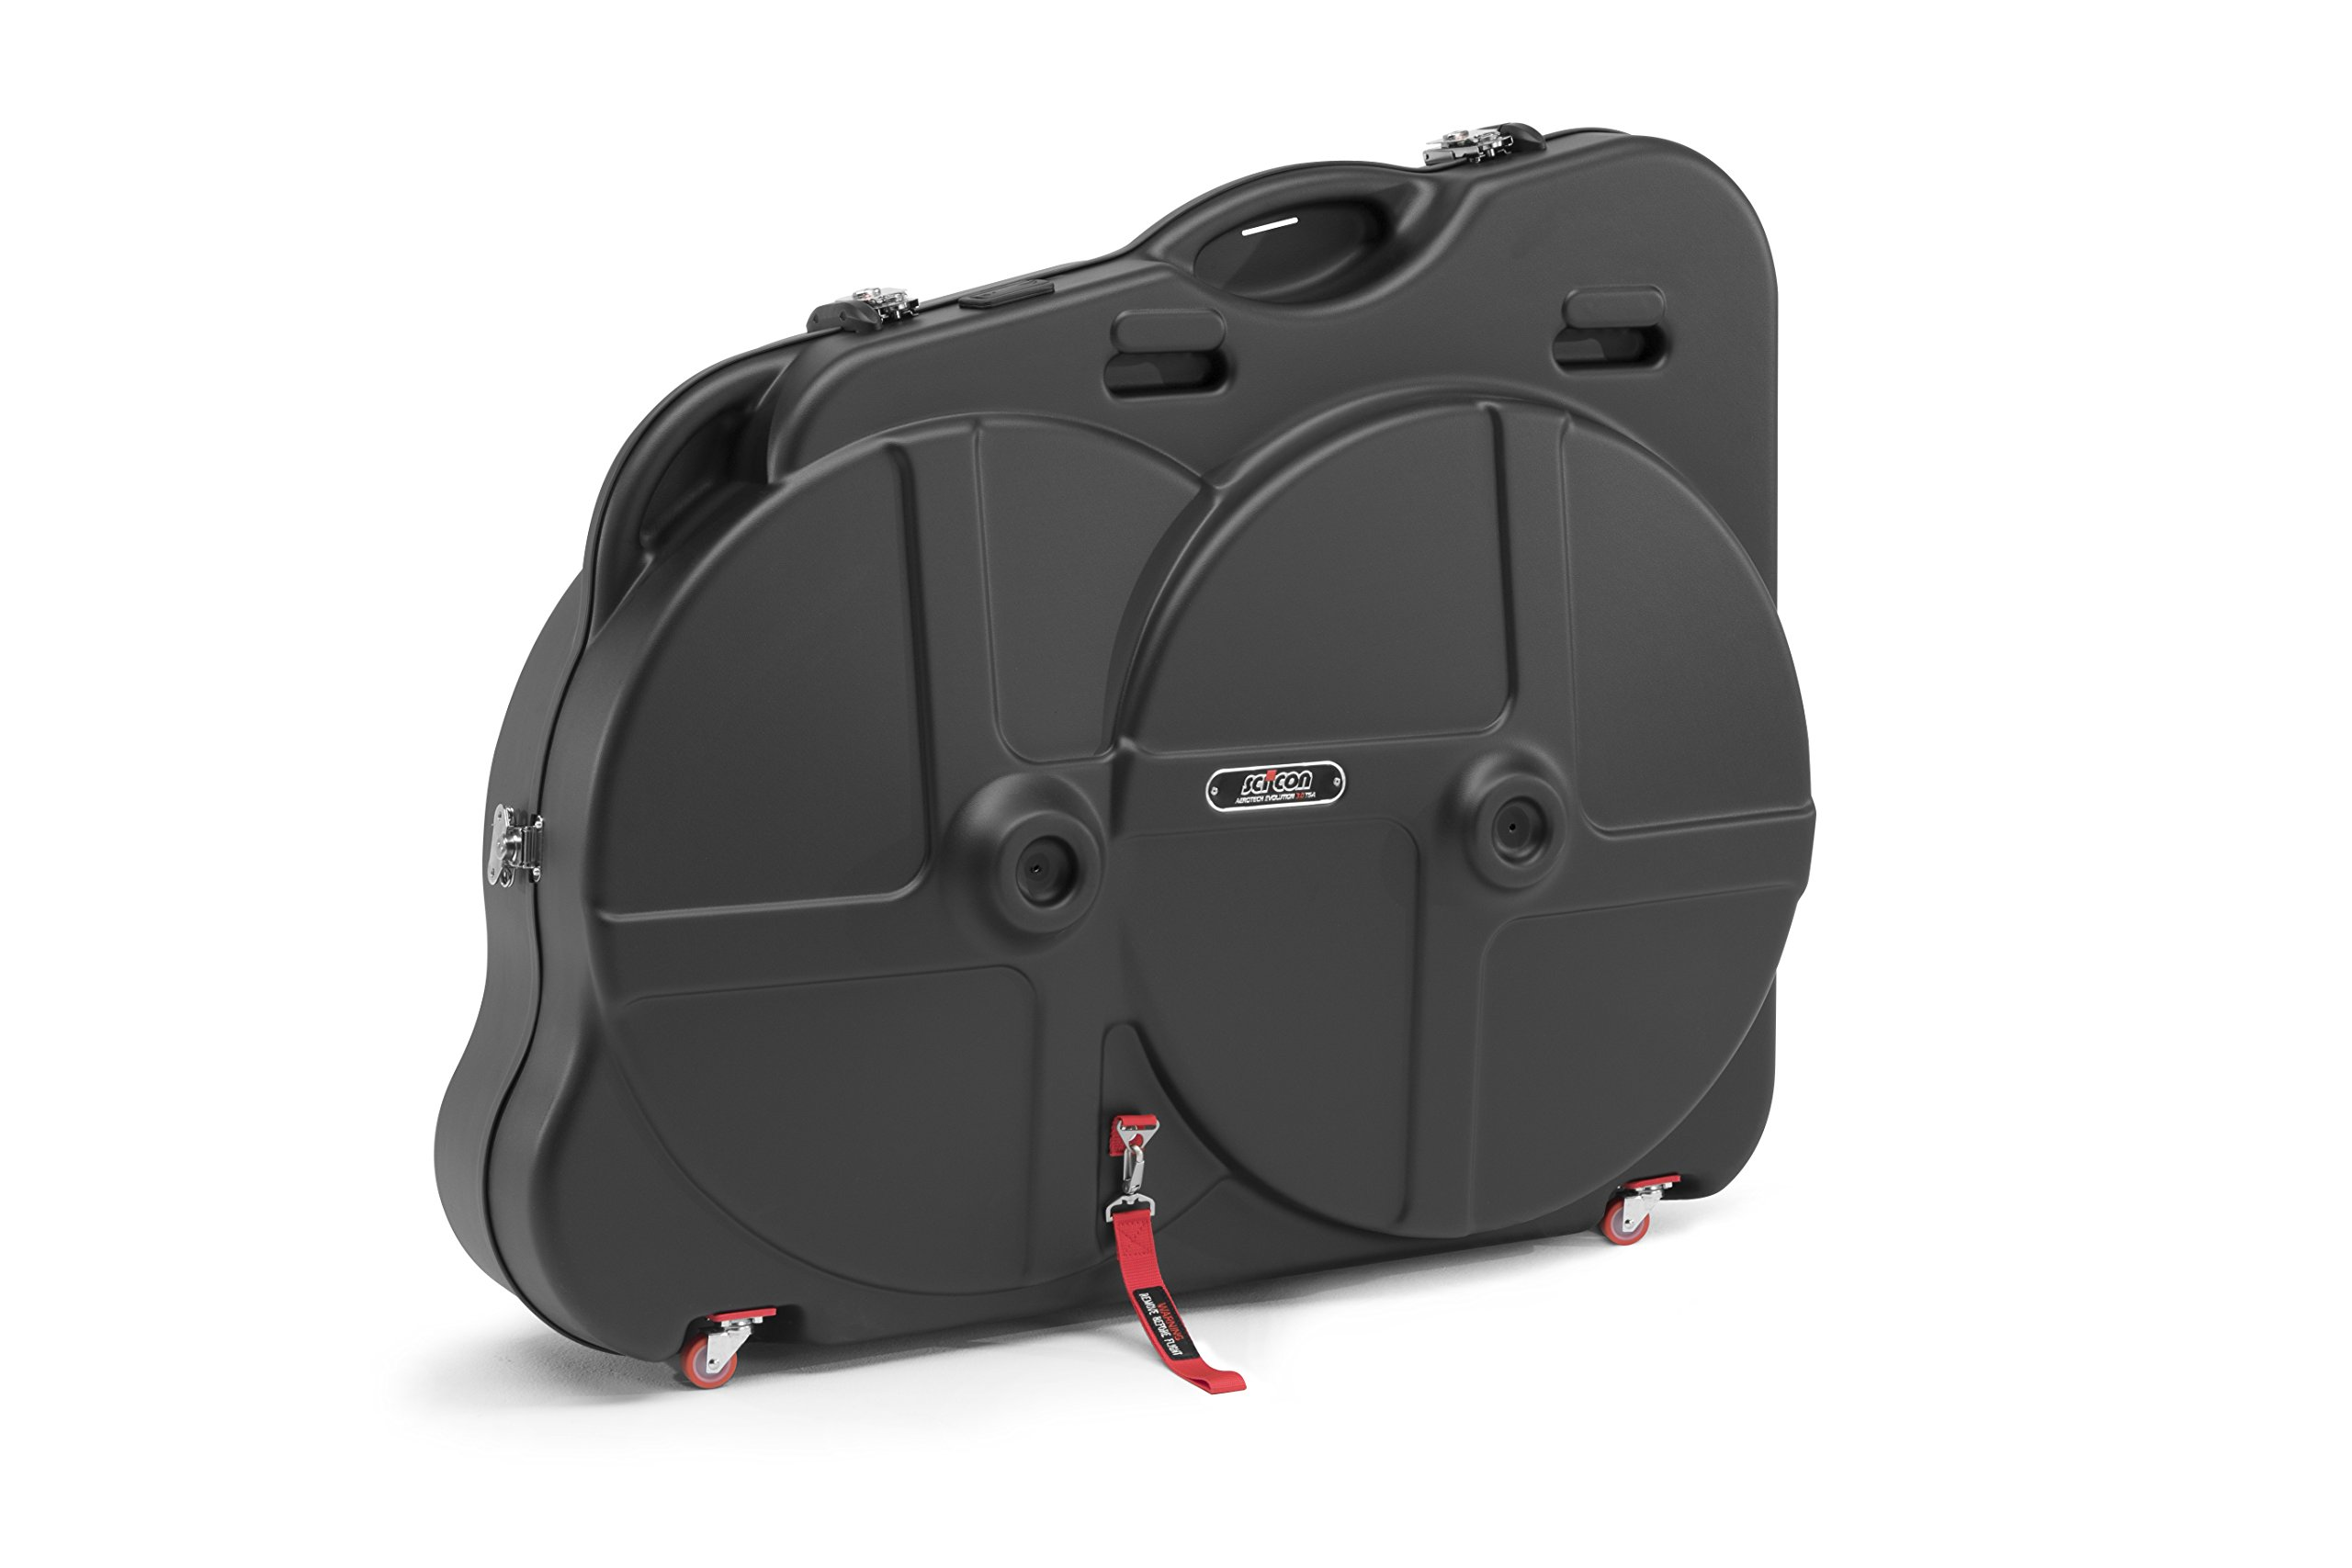 SCICON Aerotech Evolution 3.0 TSA Travel Bike Case